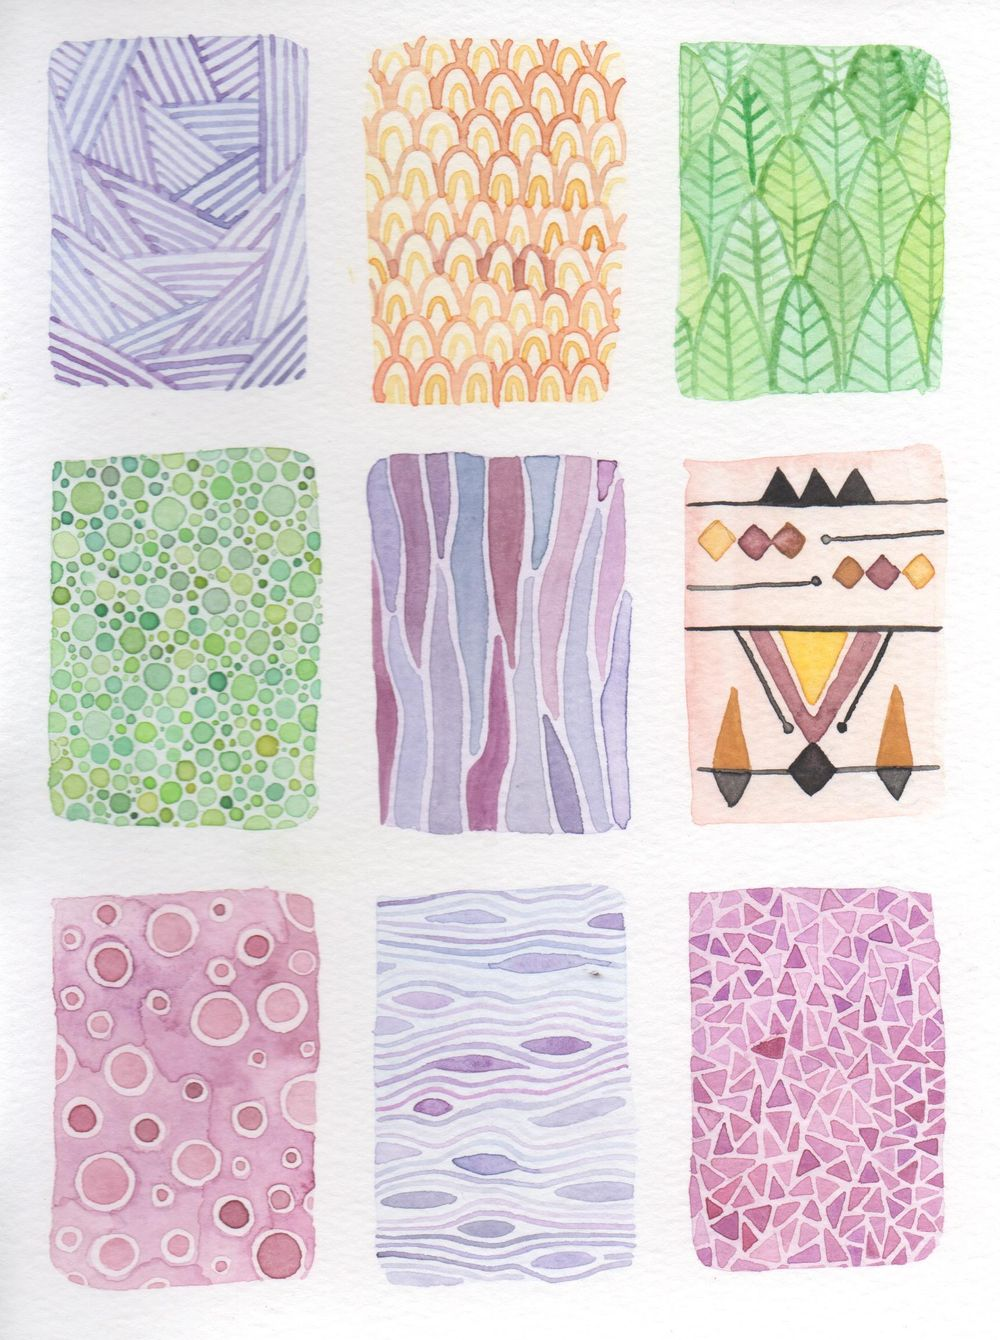 Watercolor textures! - image 1 - student project